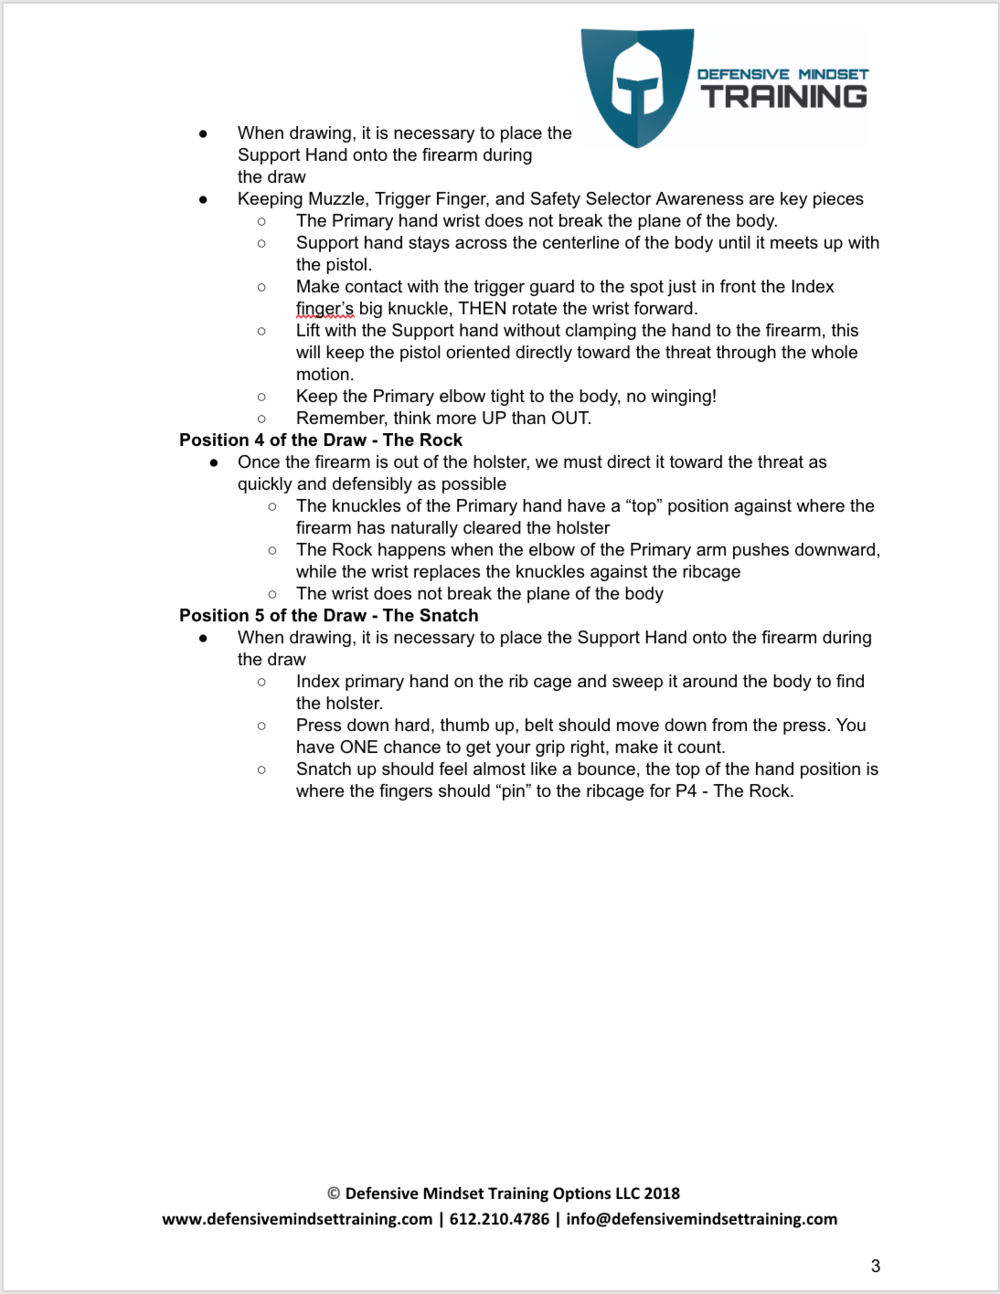 Week 7 Student Guide p 3